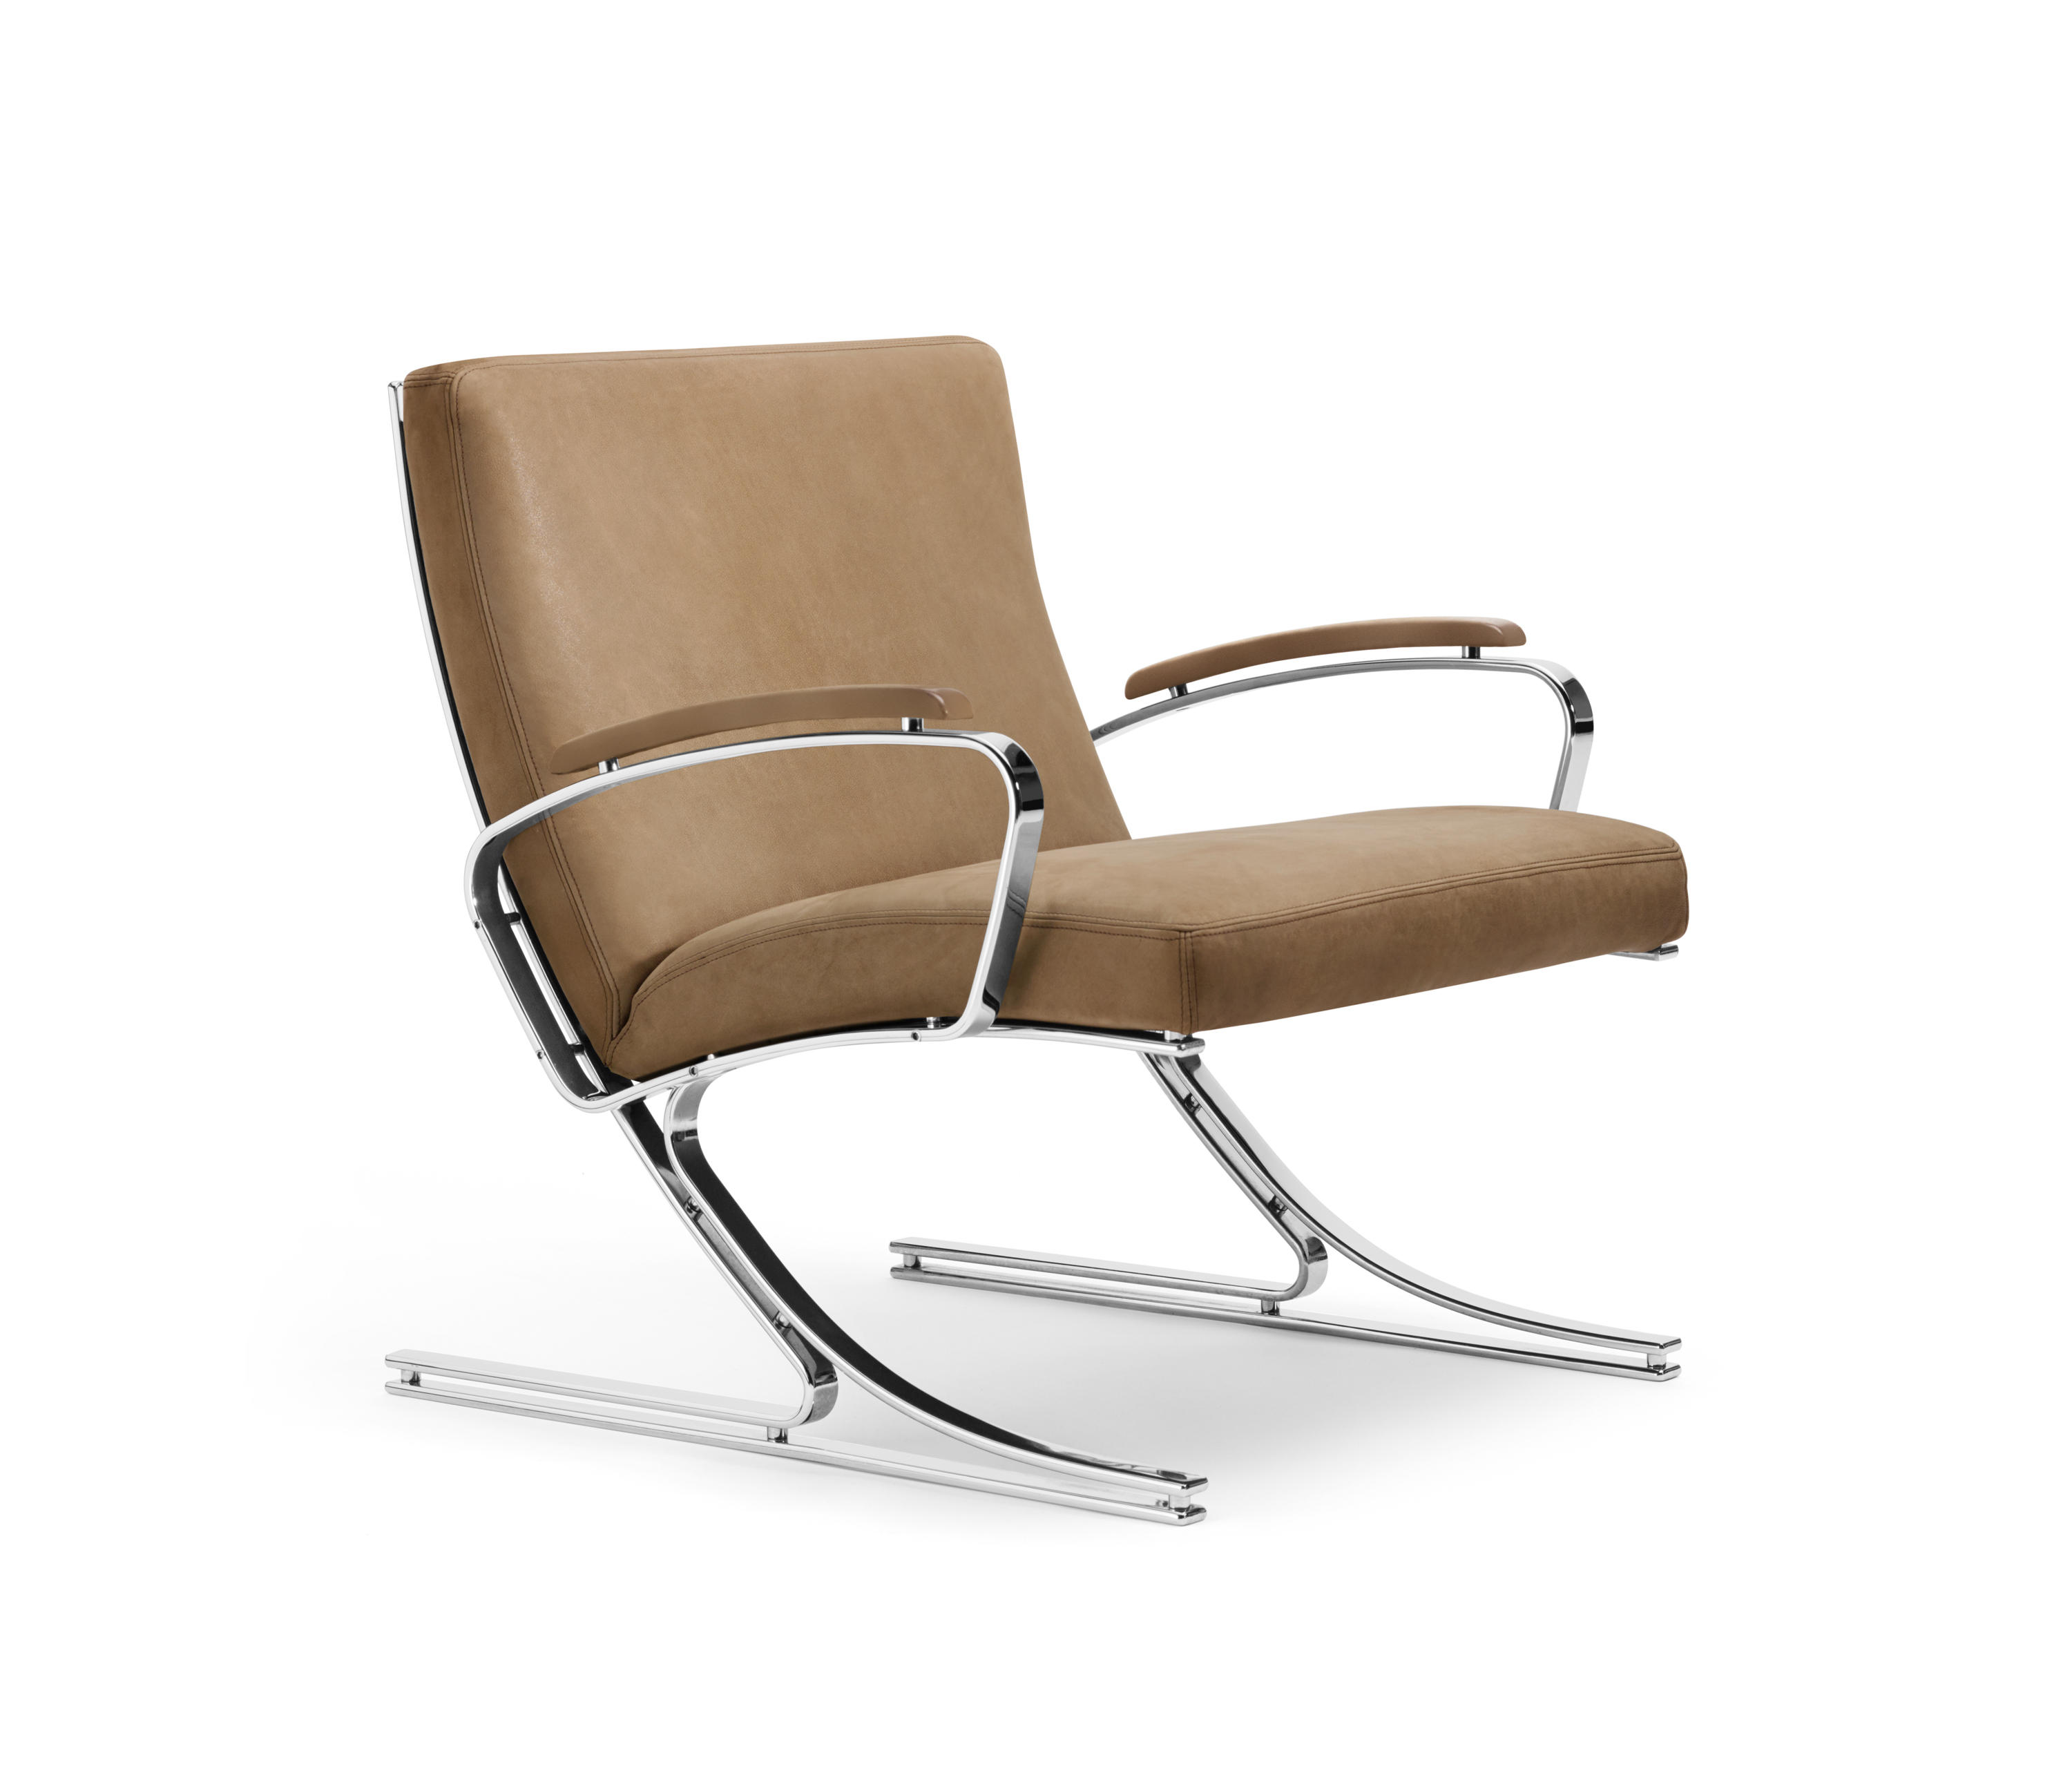 Amazing Sessel Berlin The Best Of Chair Von Walter Knoll |